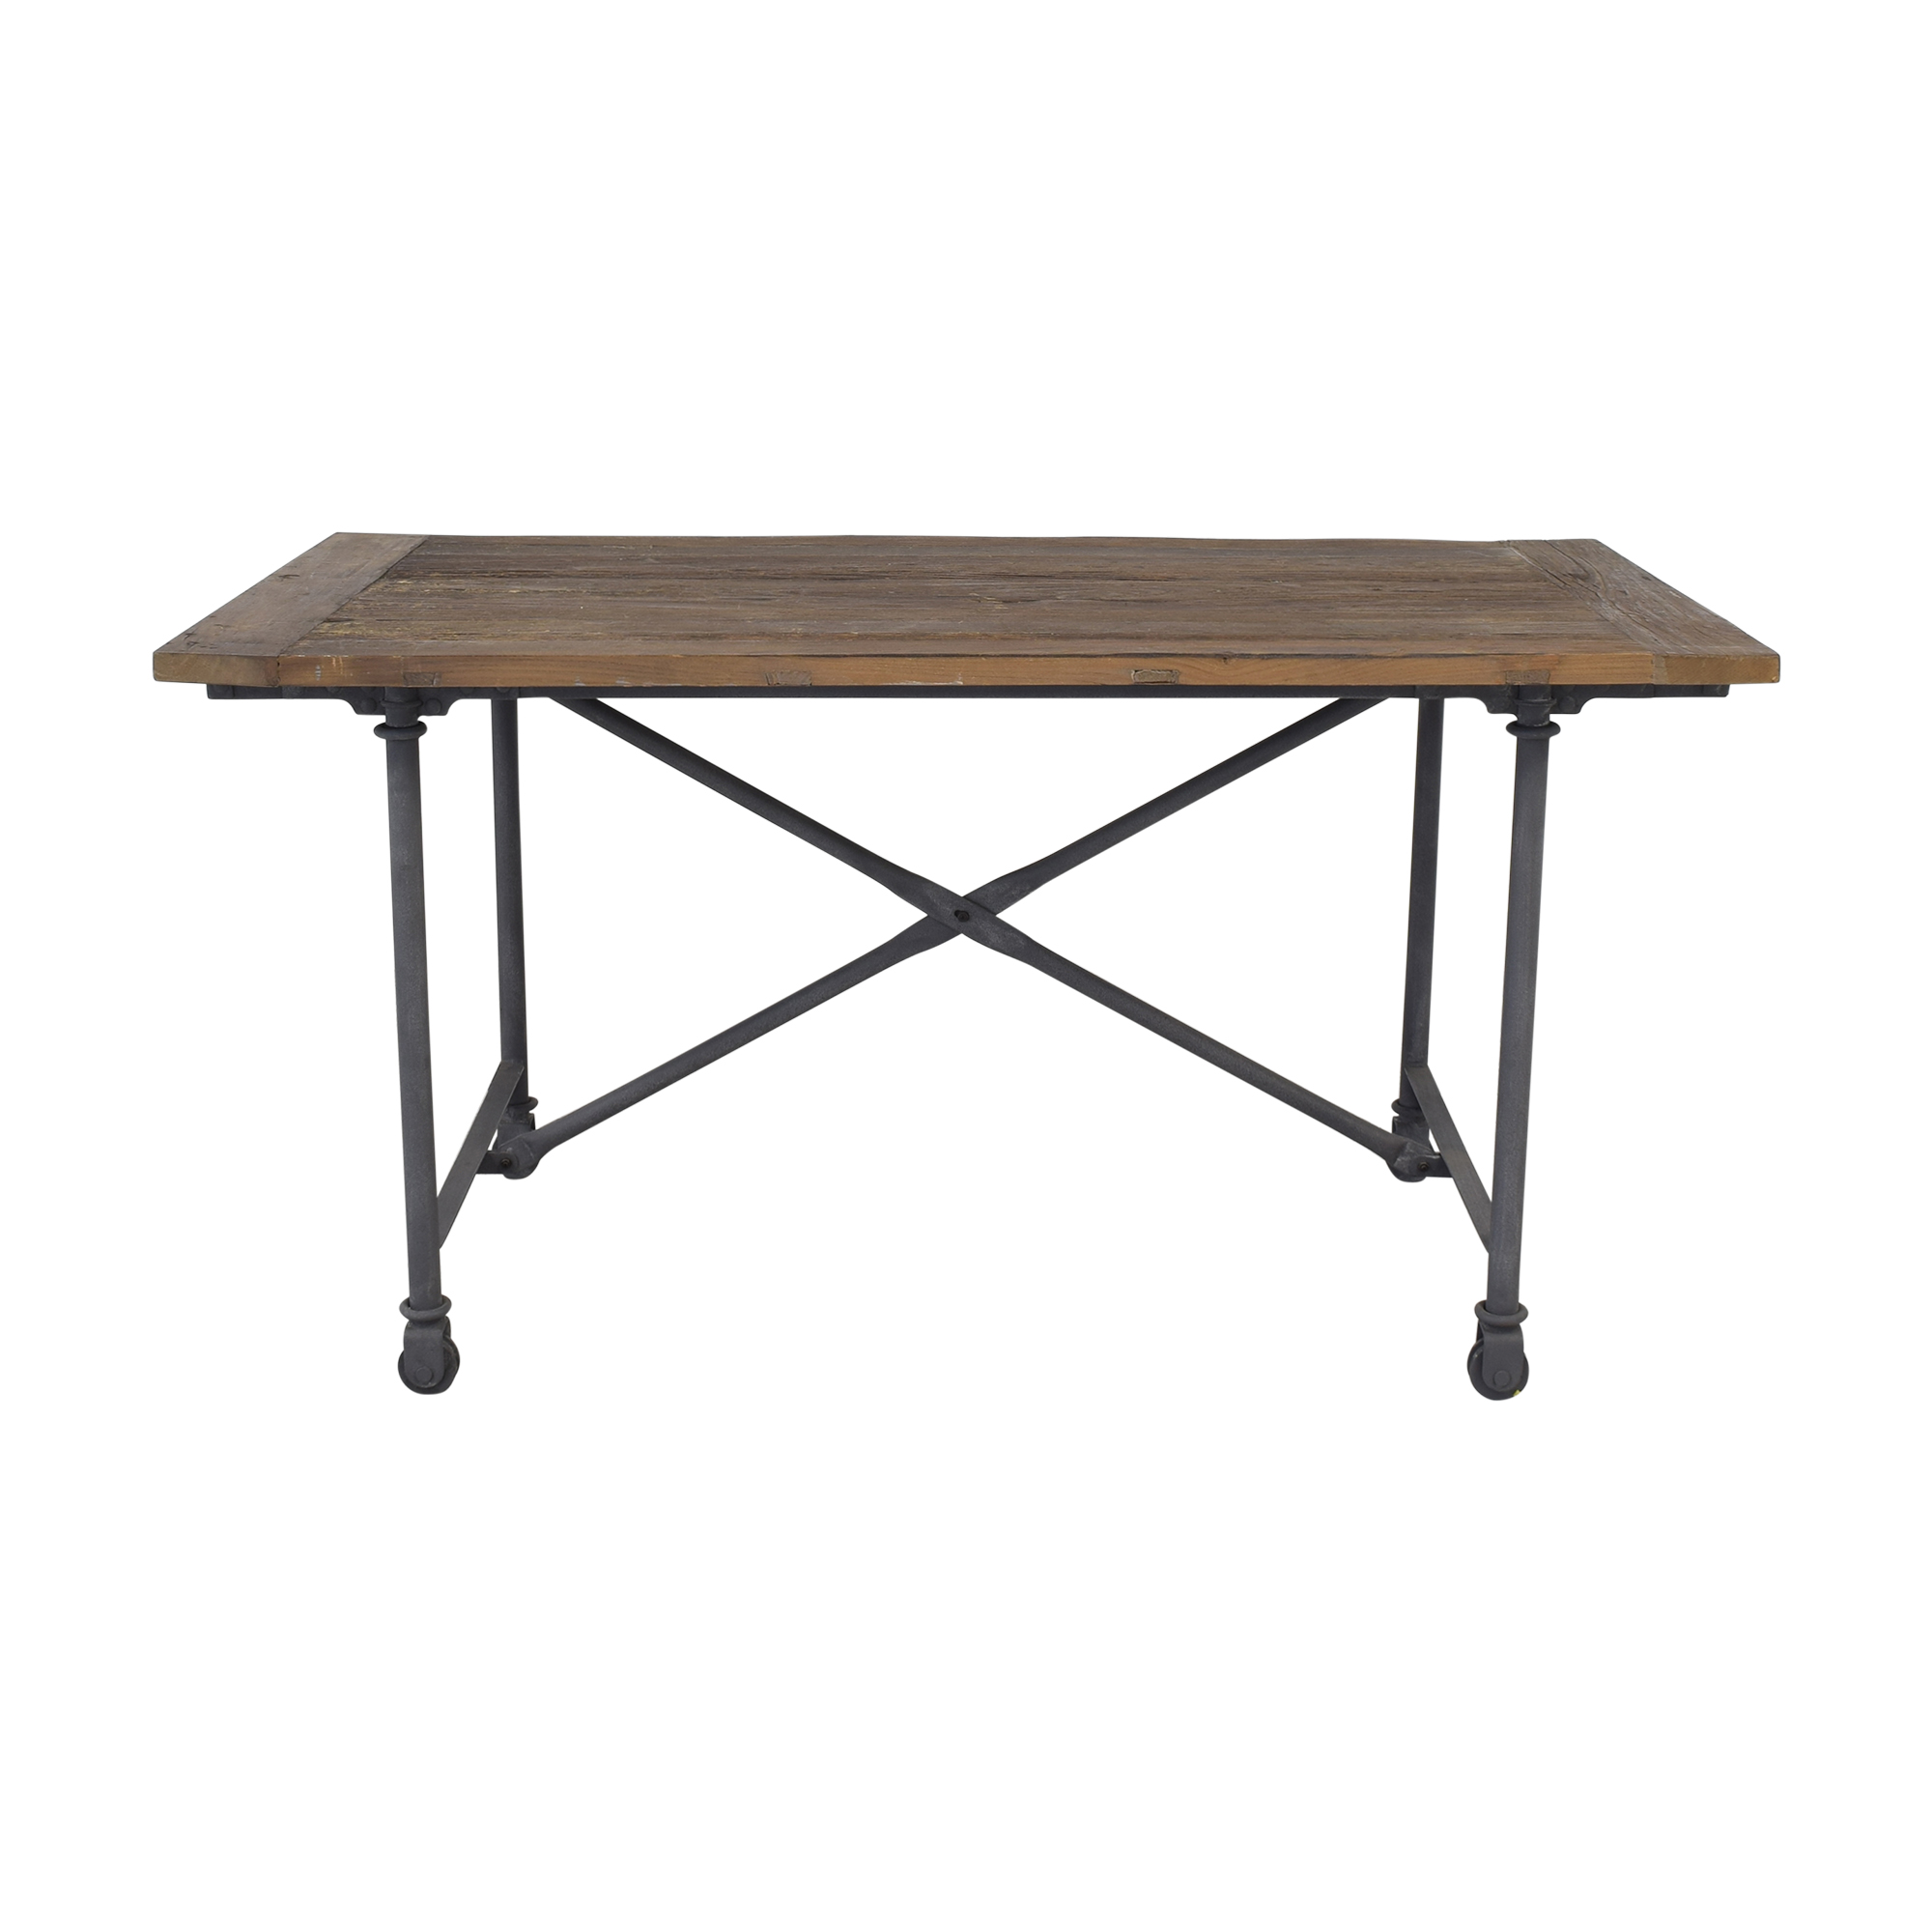 Restoration Hardware Restoration Hardware Flatiron Desk Reclaimed Natural Elm Zinc Metal price